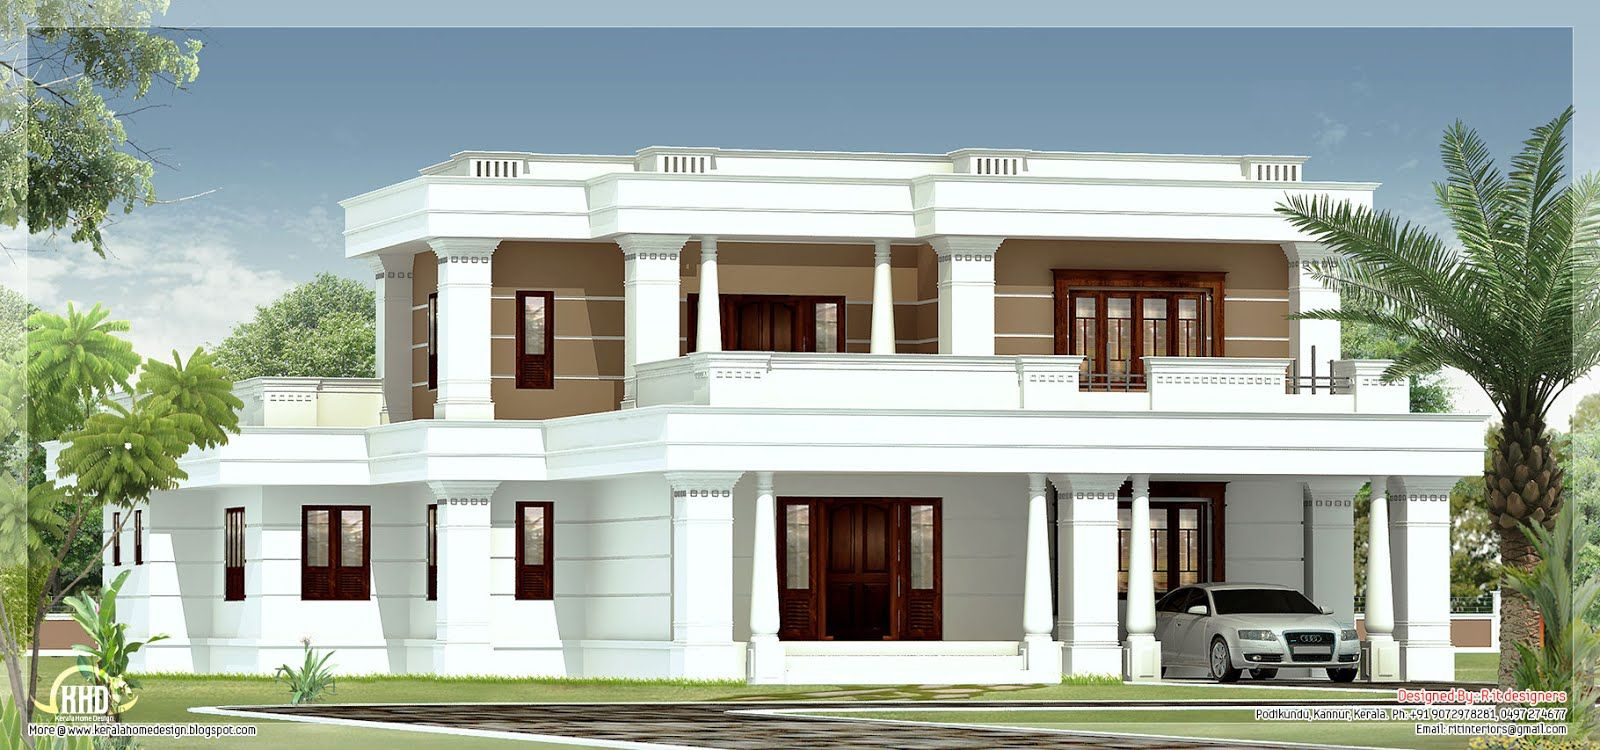 Flat roof homes designs november 2012 kerala home for 4 bedroom villa plans